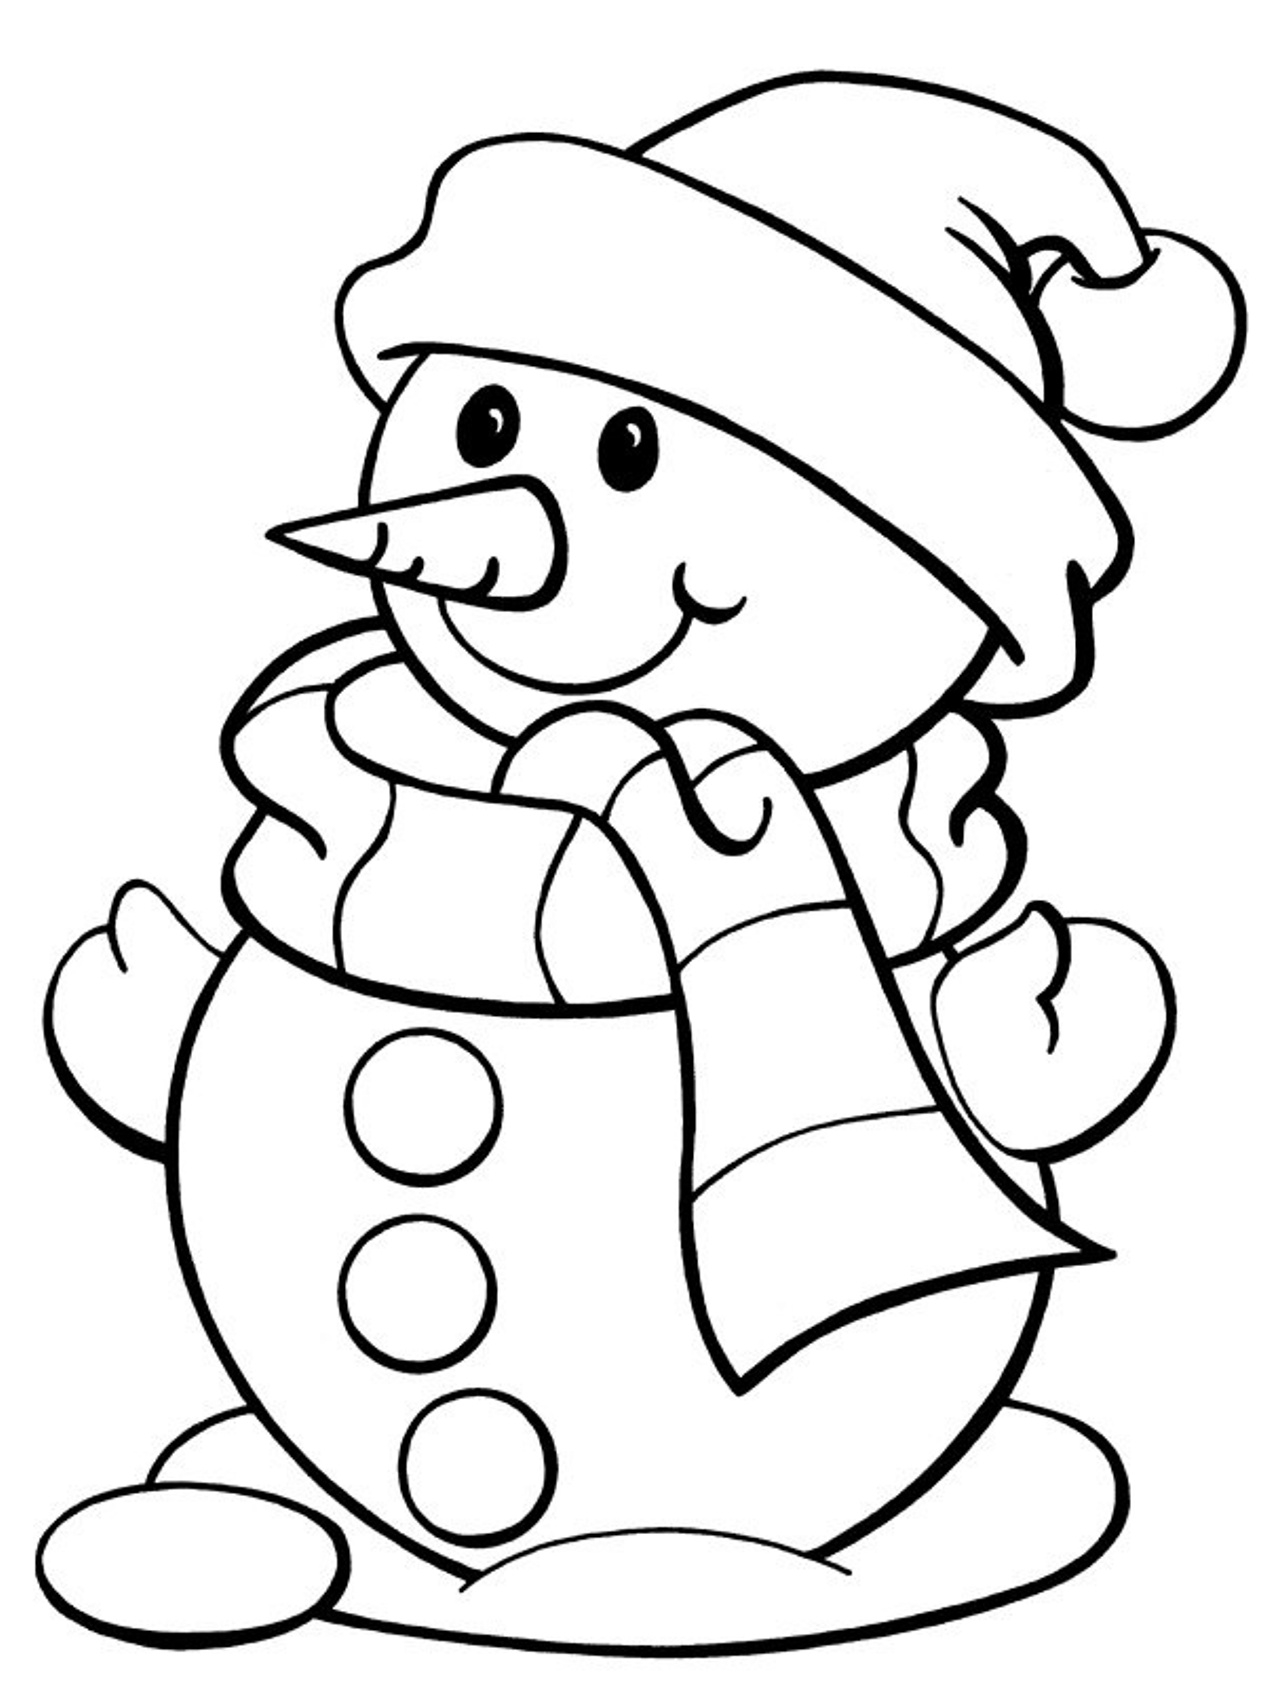 Winter Coloring Pages To Download And Print For Free Free Winter Coloring Pages